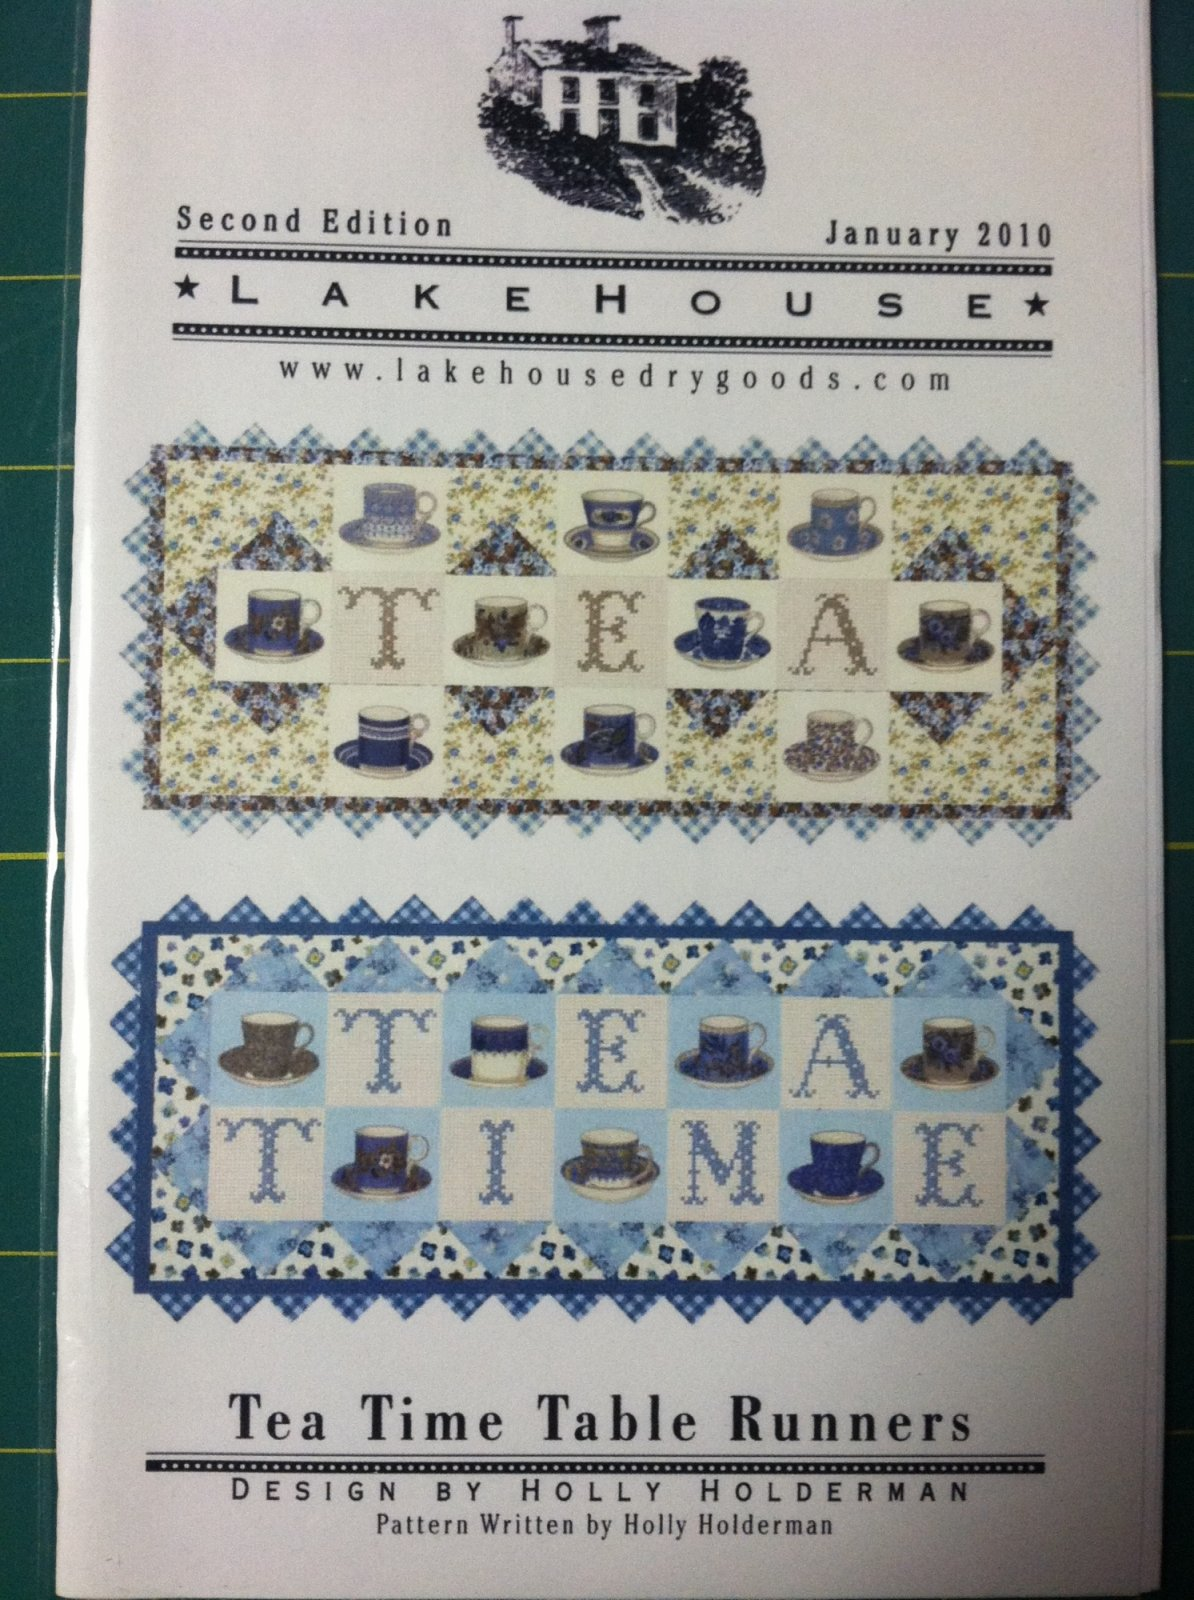 Tea Time Table Runners